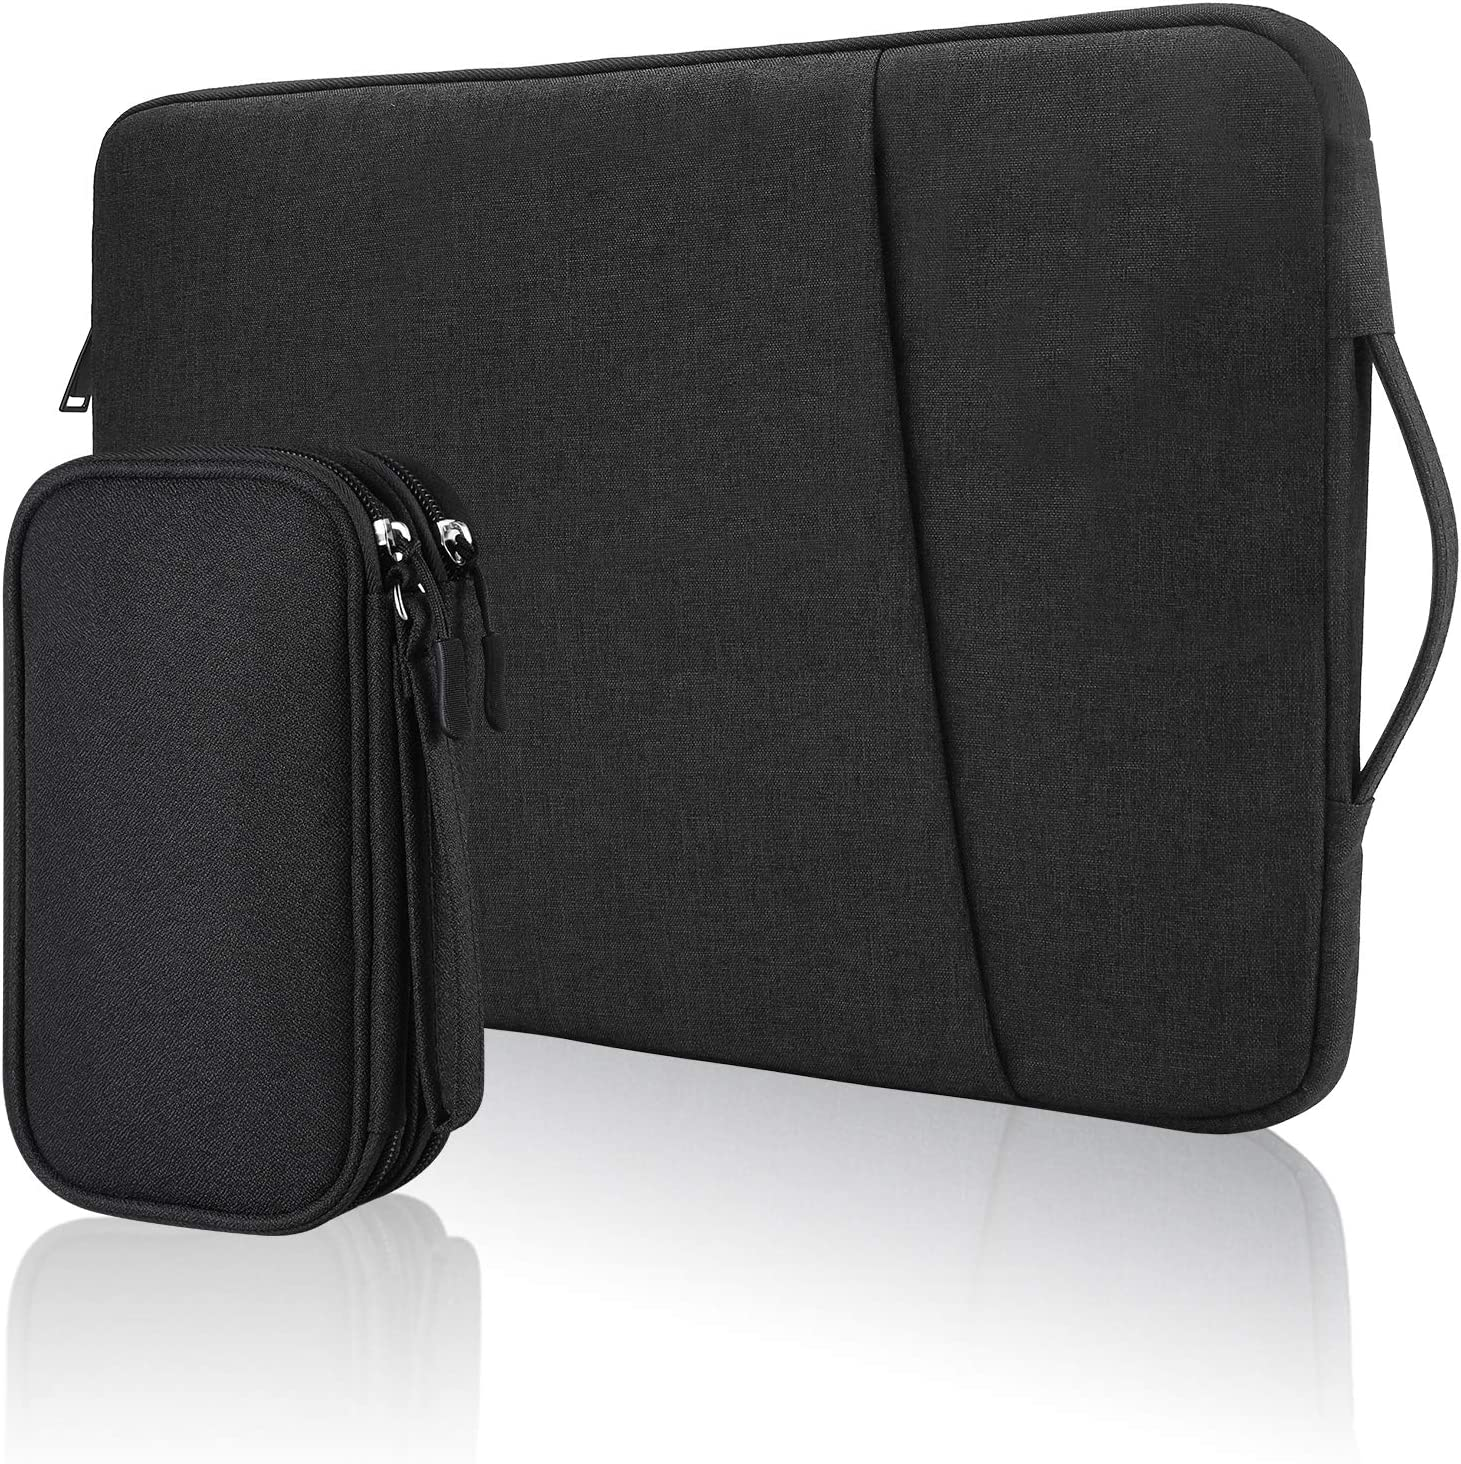 Bevegekos 14 Inch Chromebook Case Sleeve with Travel Tech Organizer Bag, Splashproof, for School Kids, College Students and Office Workers (Black)